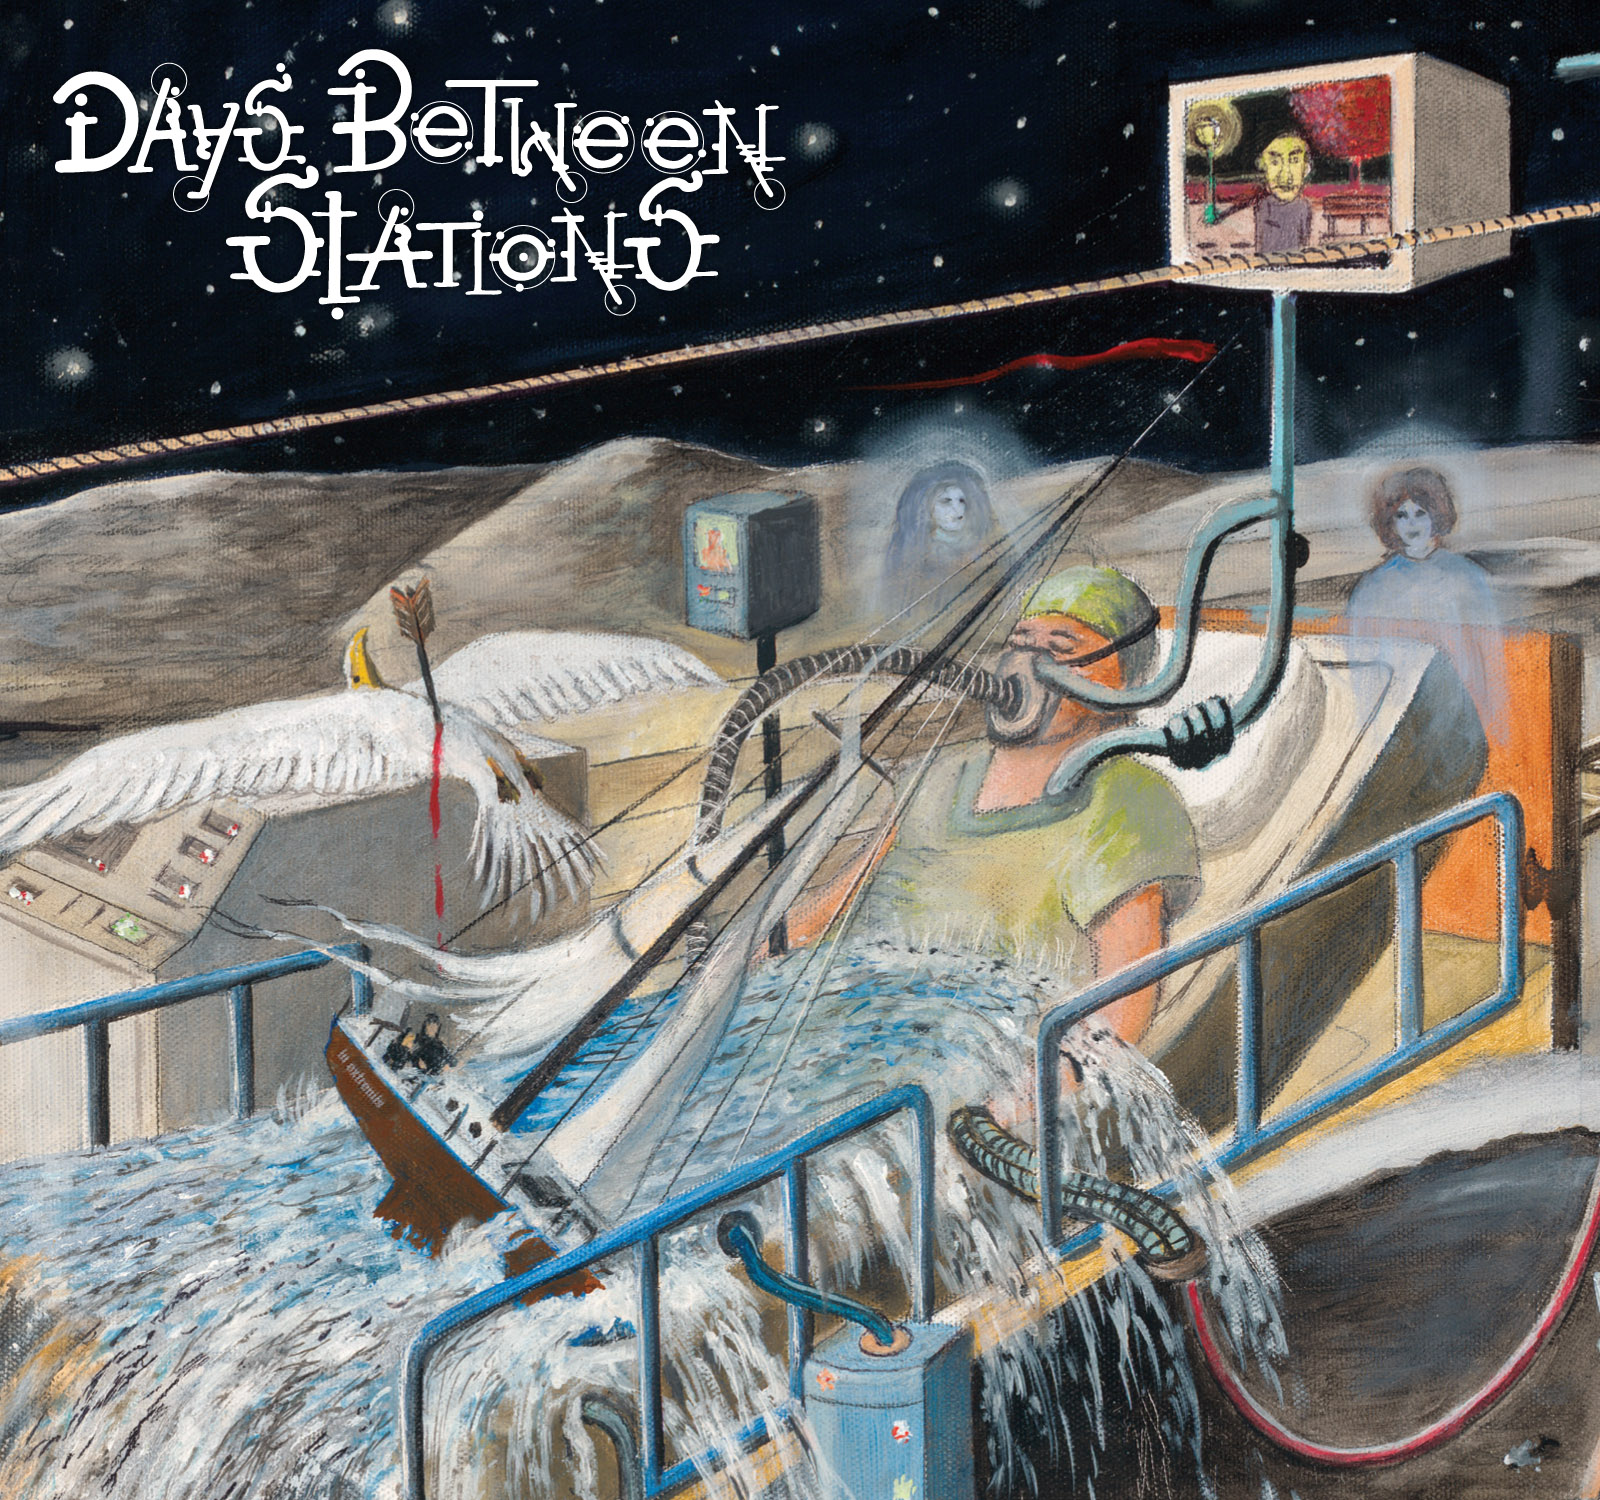 Days between stations